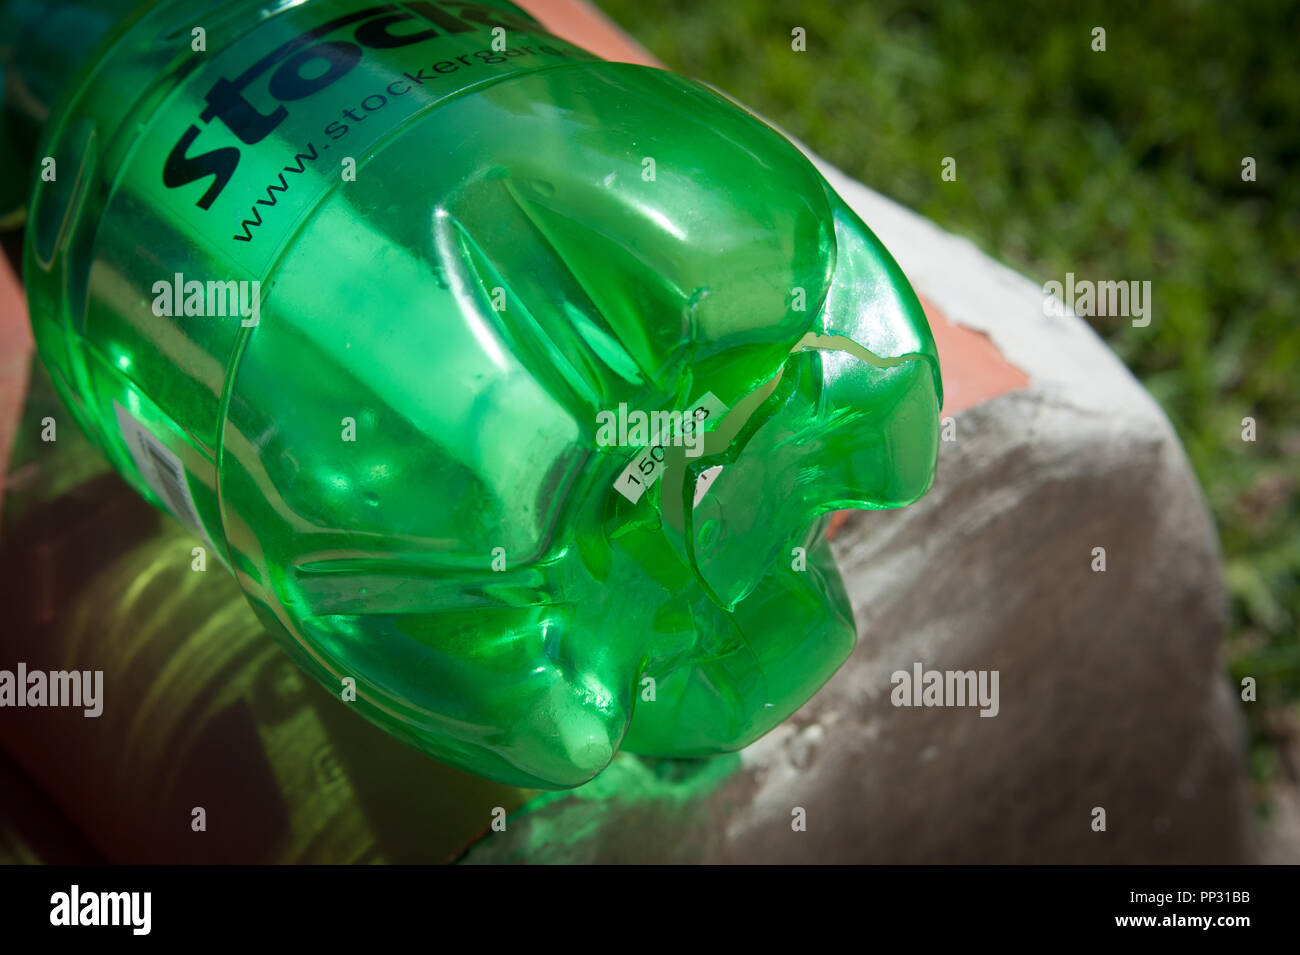 A plant spray which relies on air pressure for spraying plants and trees with insecticides has been over pressurised by the user and has exploded. - Stock Image